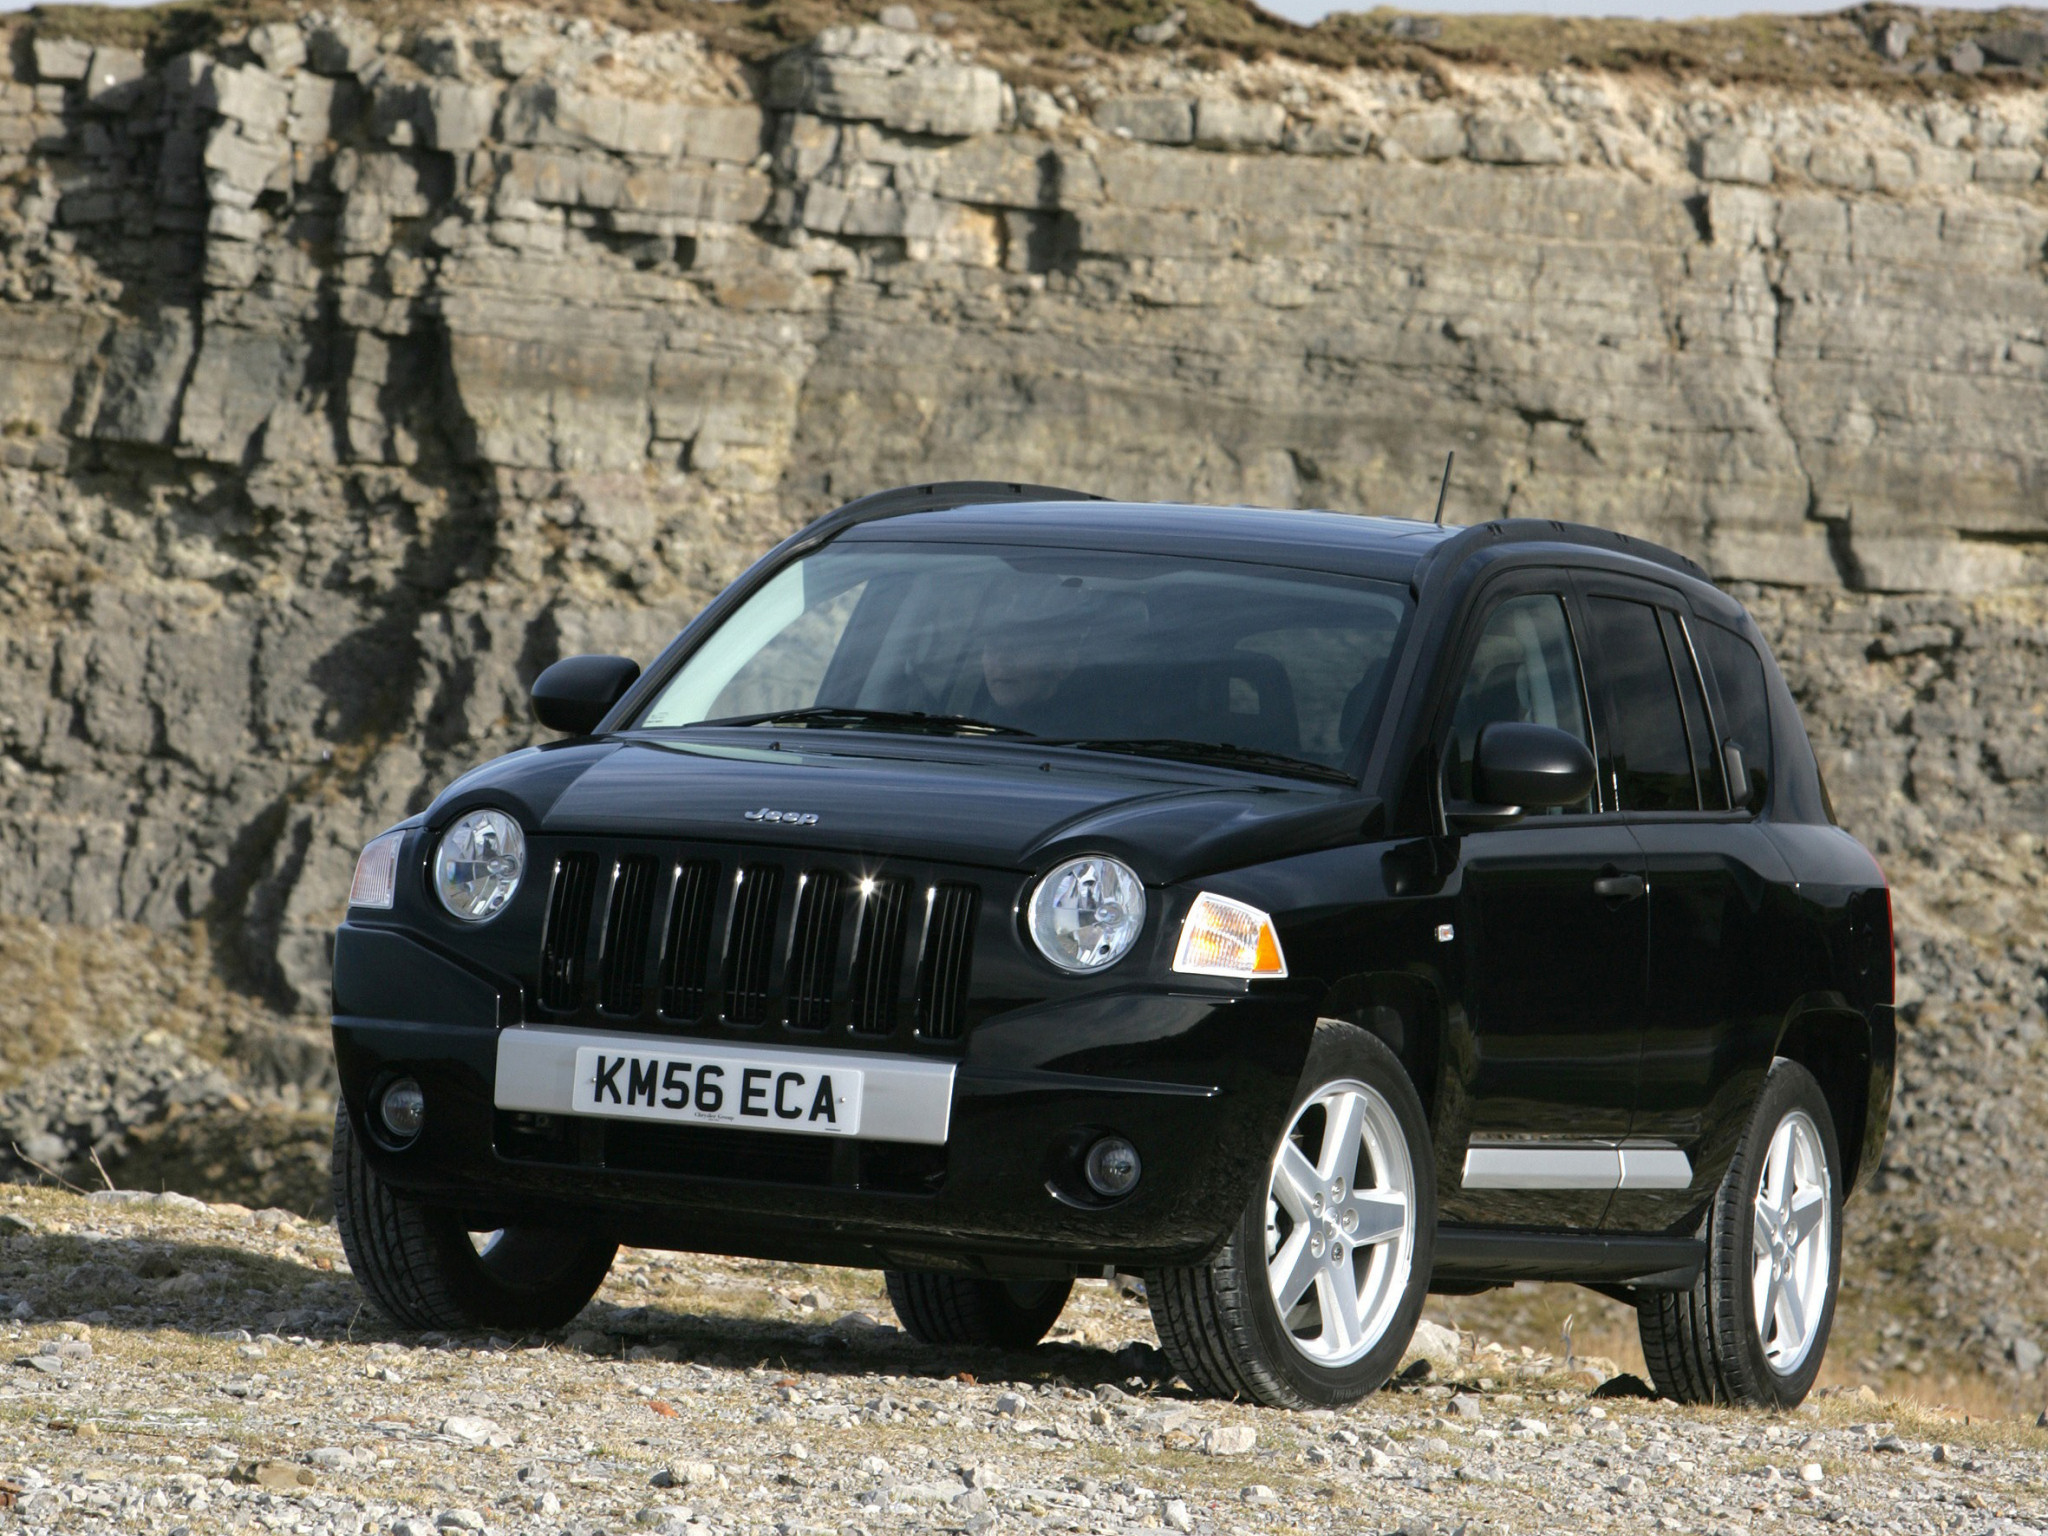 jeep compass 2006 jeep compass 2006 photo 08 car in pictures car photo gallery. Black Bedroom Furniture Sets. Home Design Ideas